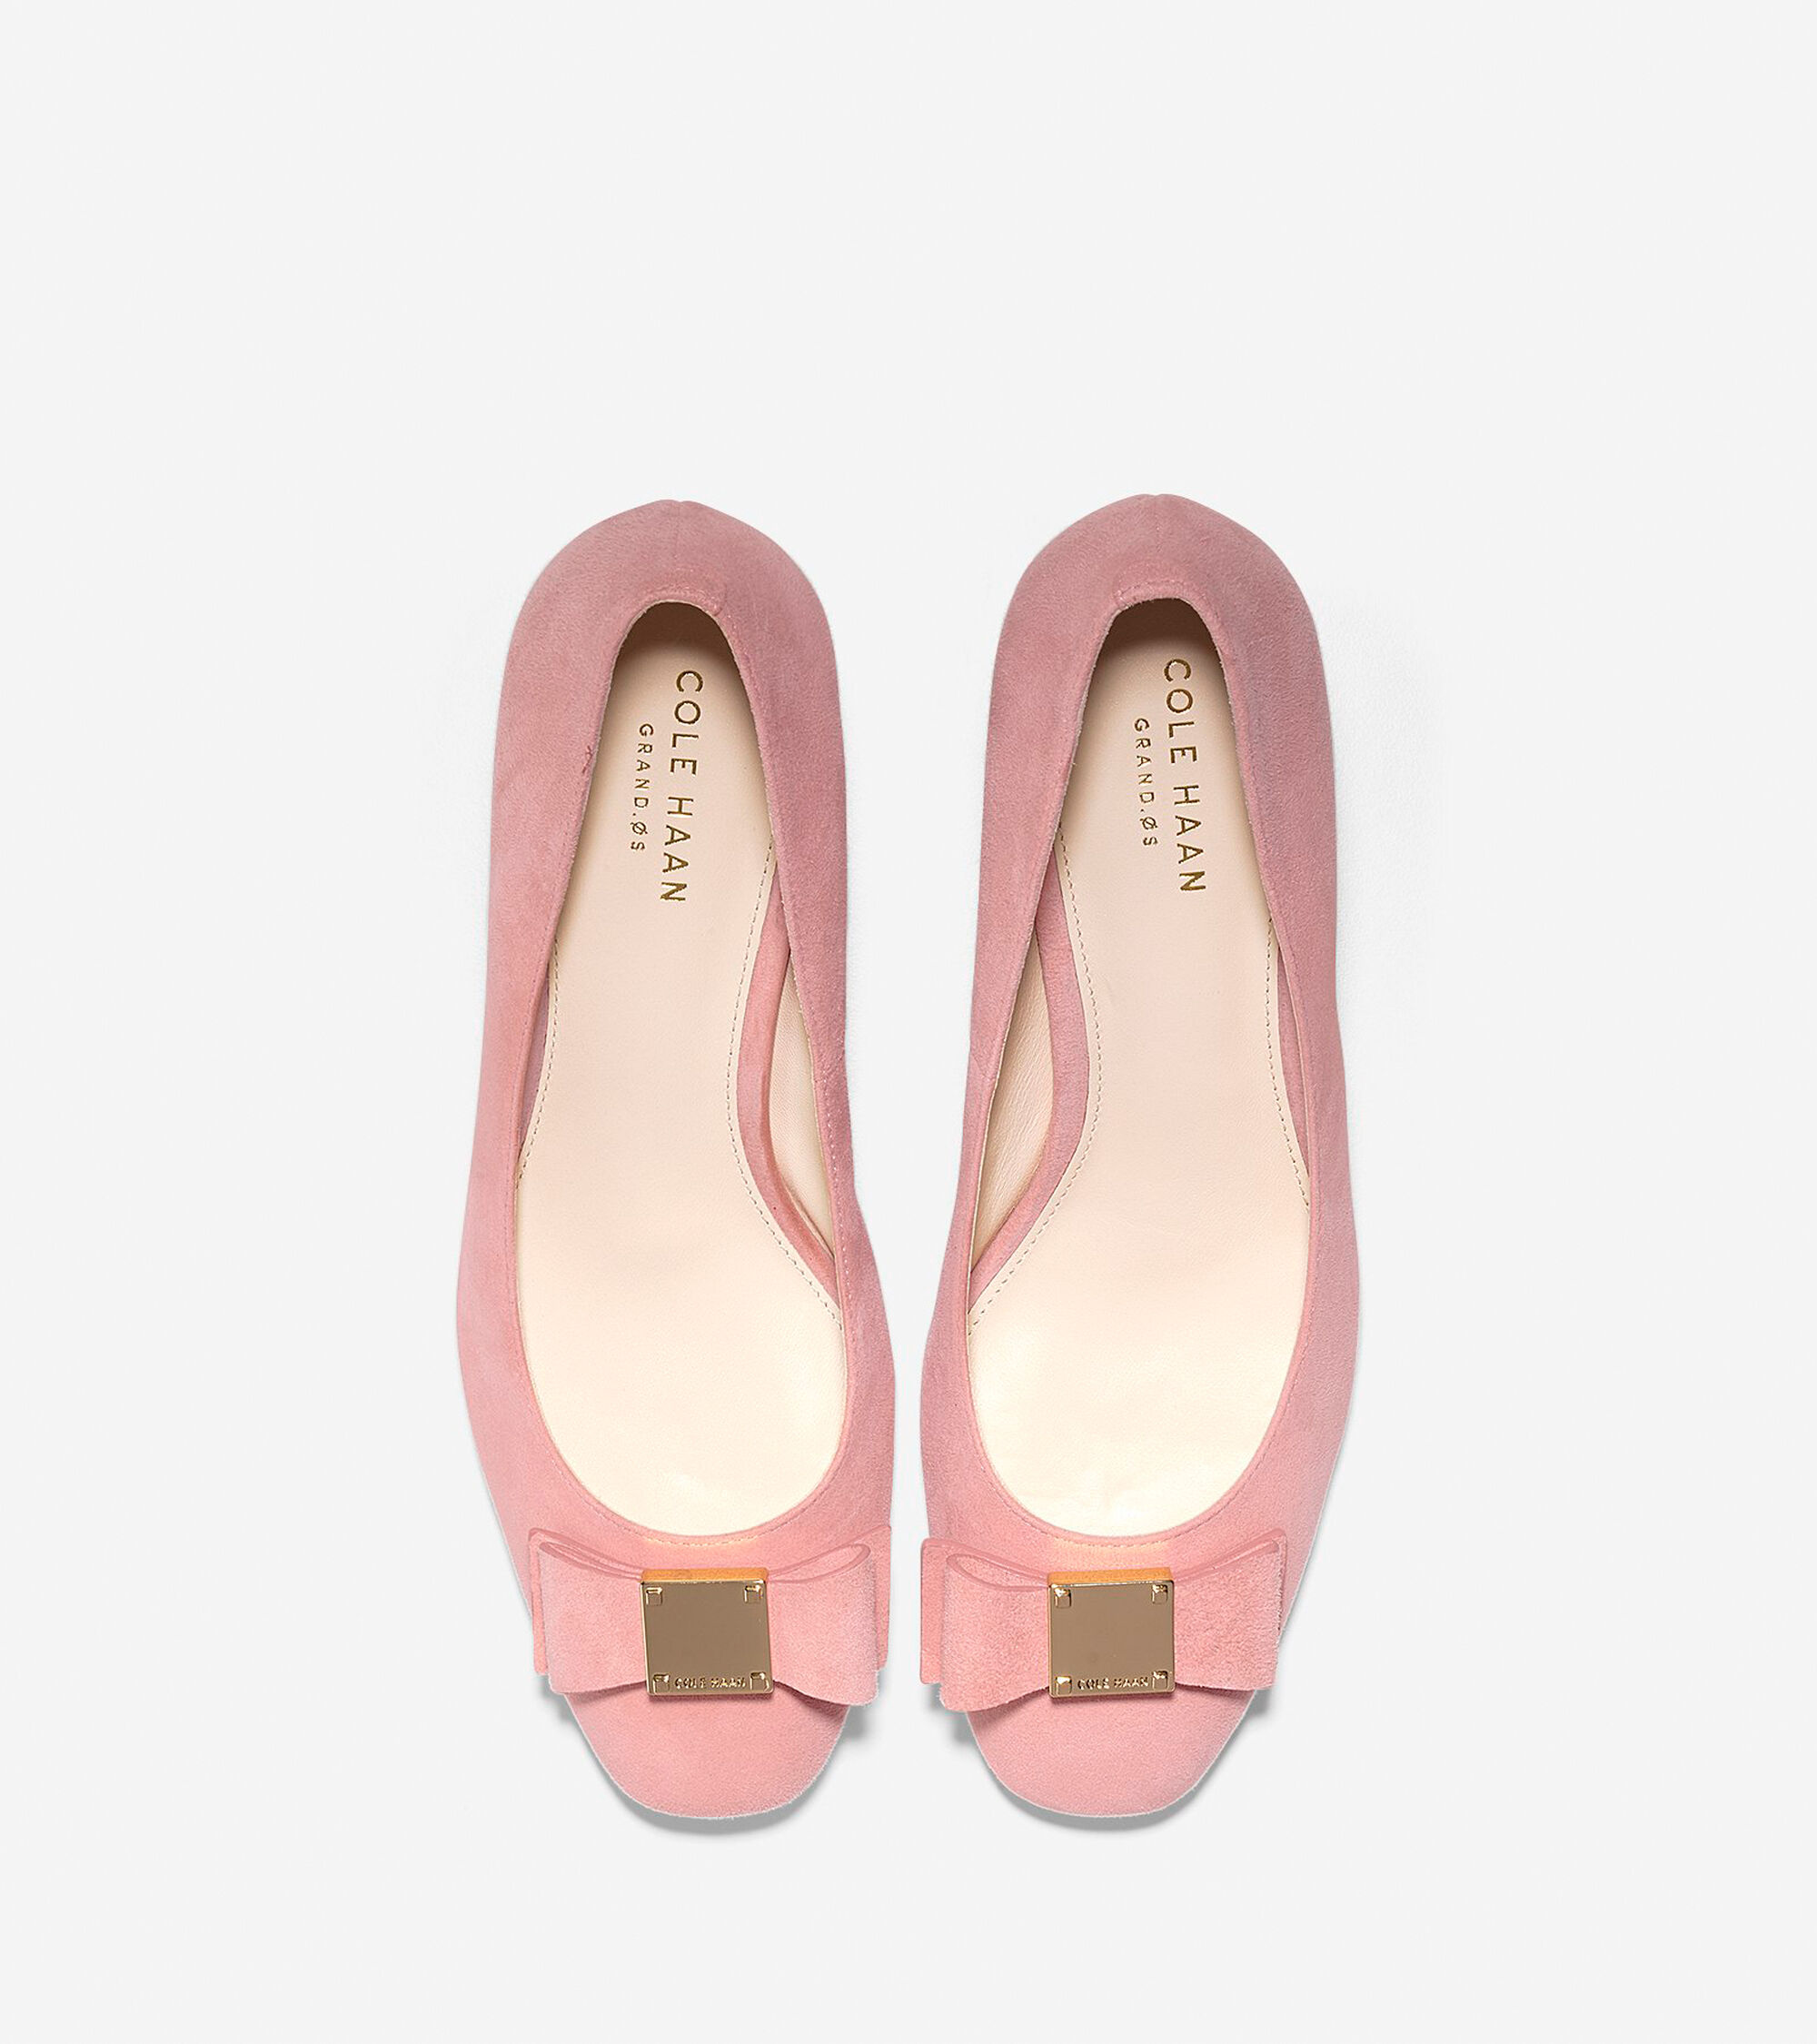 8c38607e77d7 Women s Tali Bow Pumps 65mm in Coral Almond